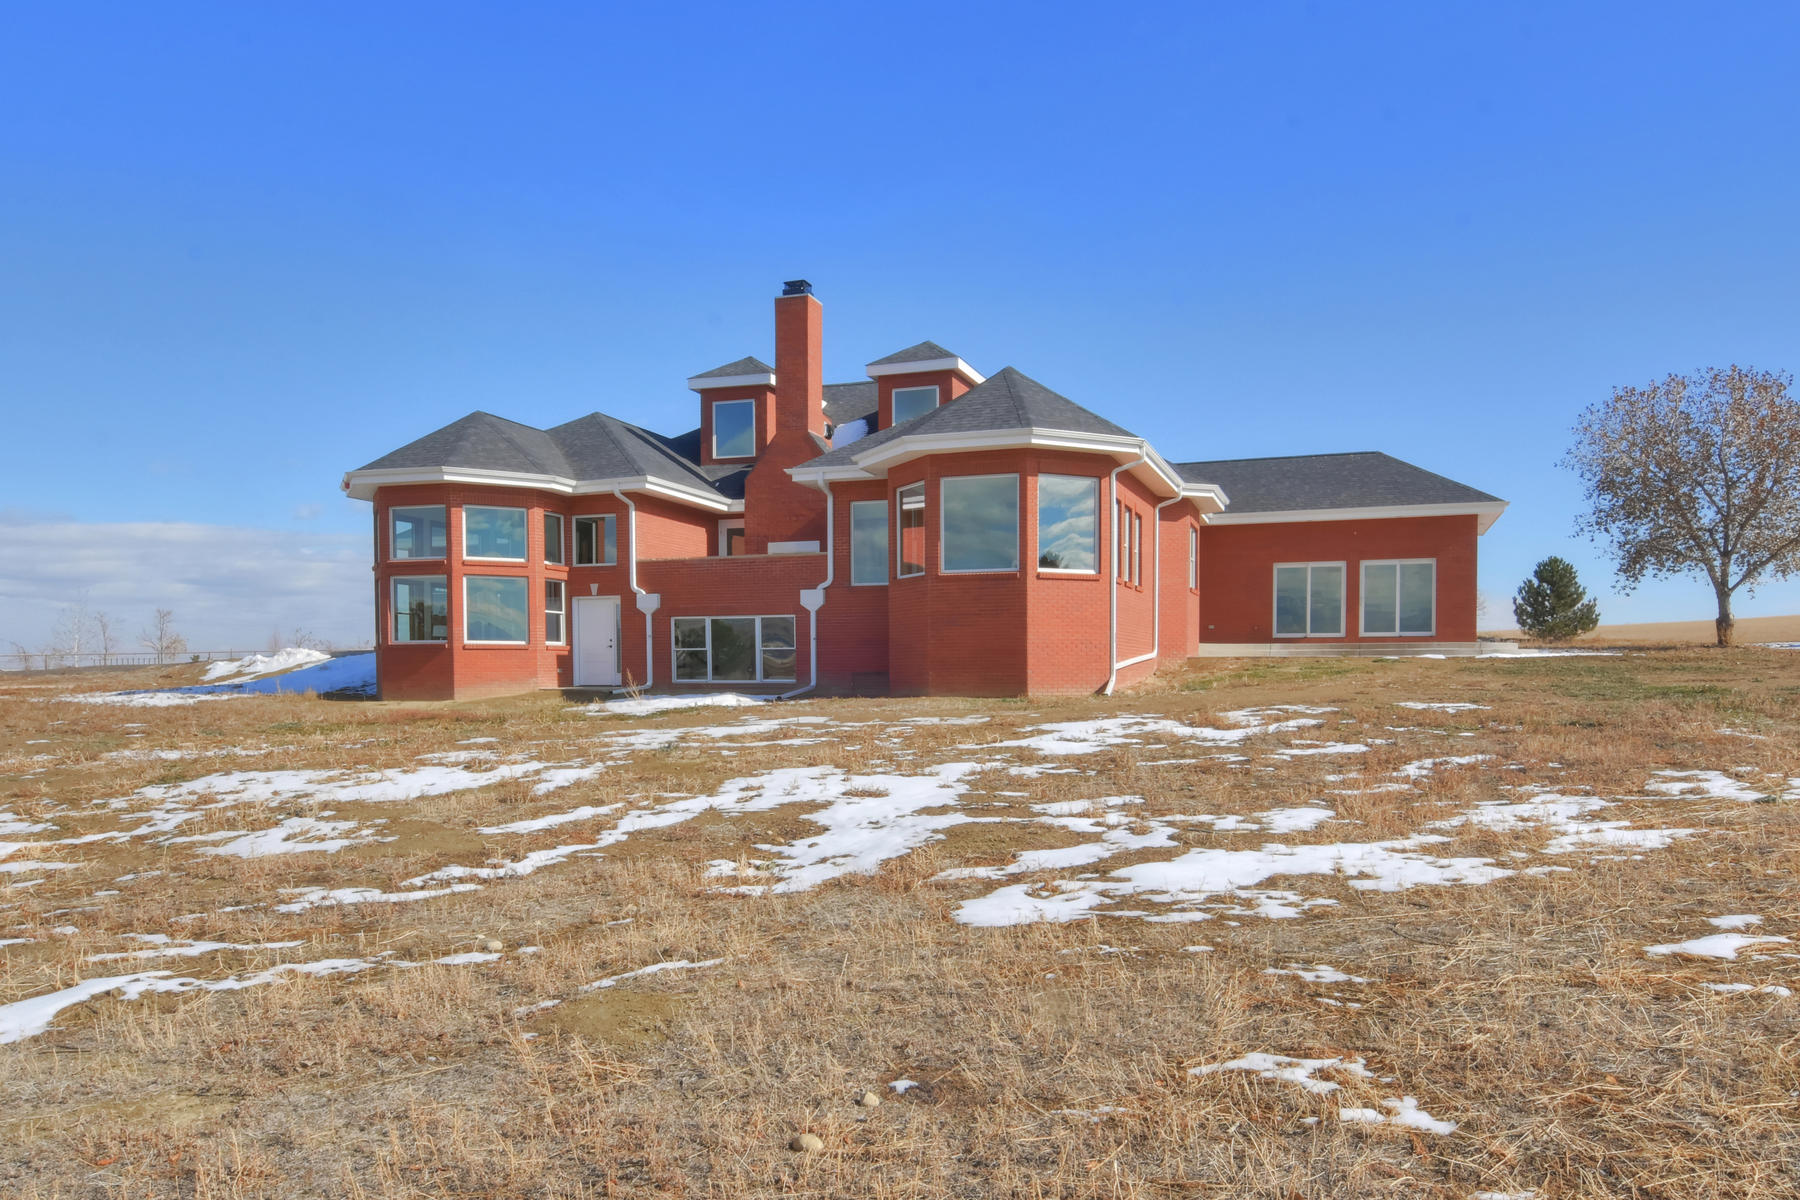 Single Family Homes for Active at Red Brick Castle 6082 N 79th St Niwot, Colorado 80503 United States